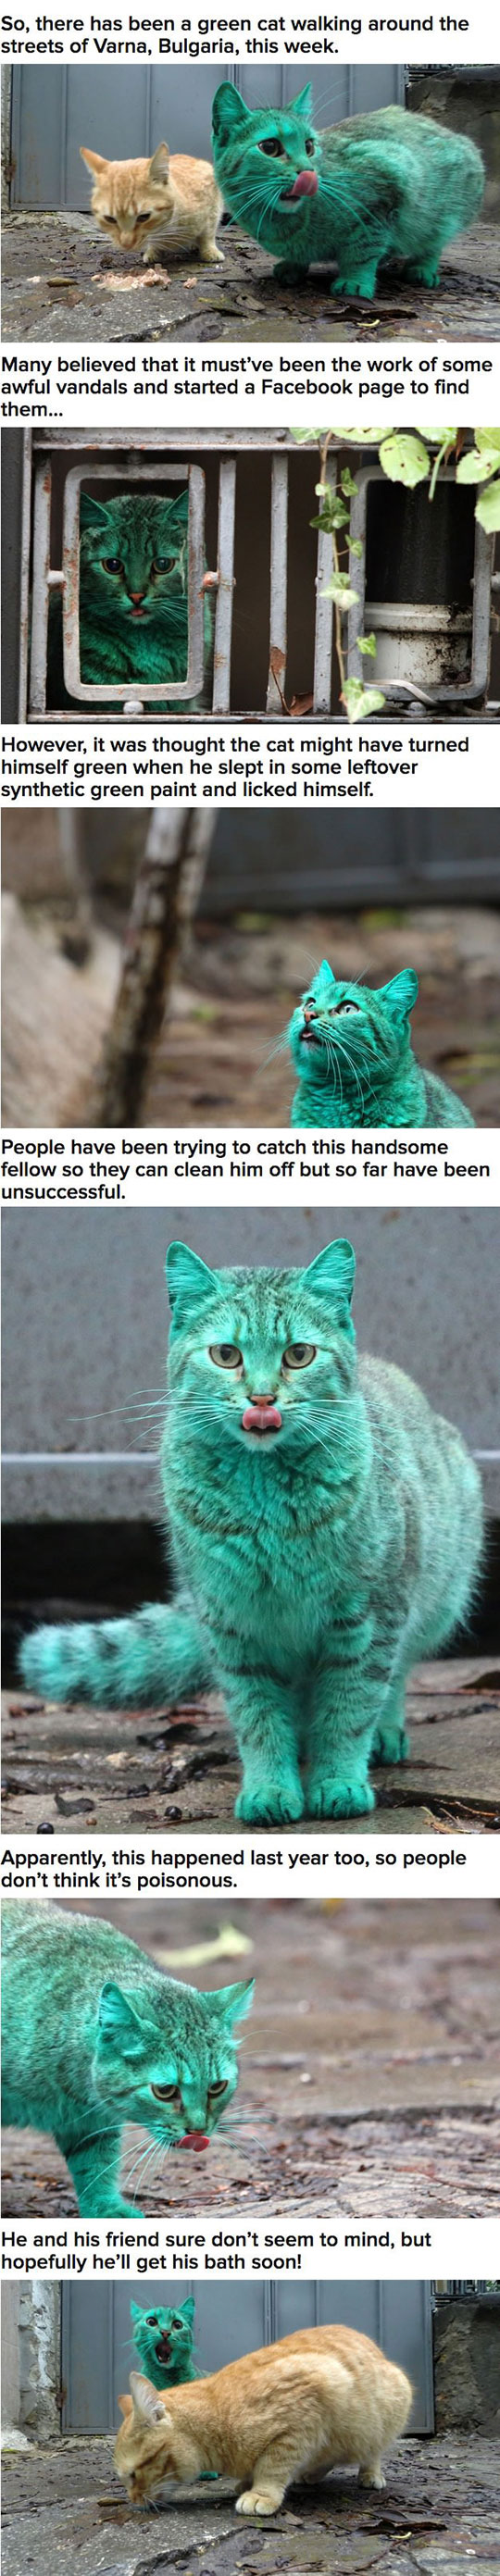 The Story Of The Turquoise Cat